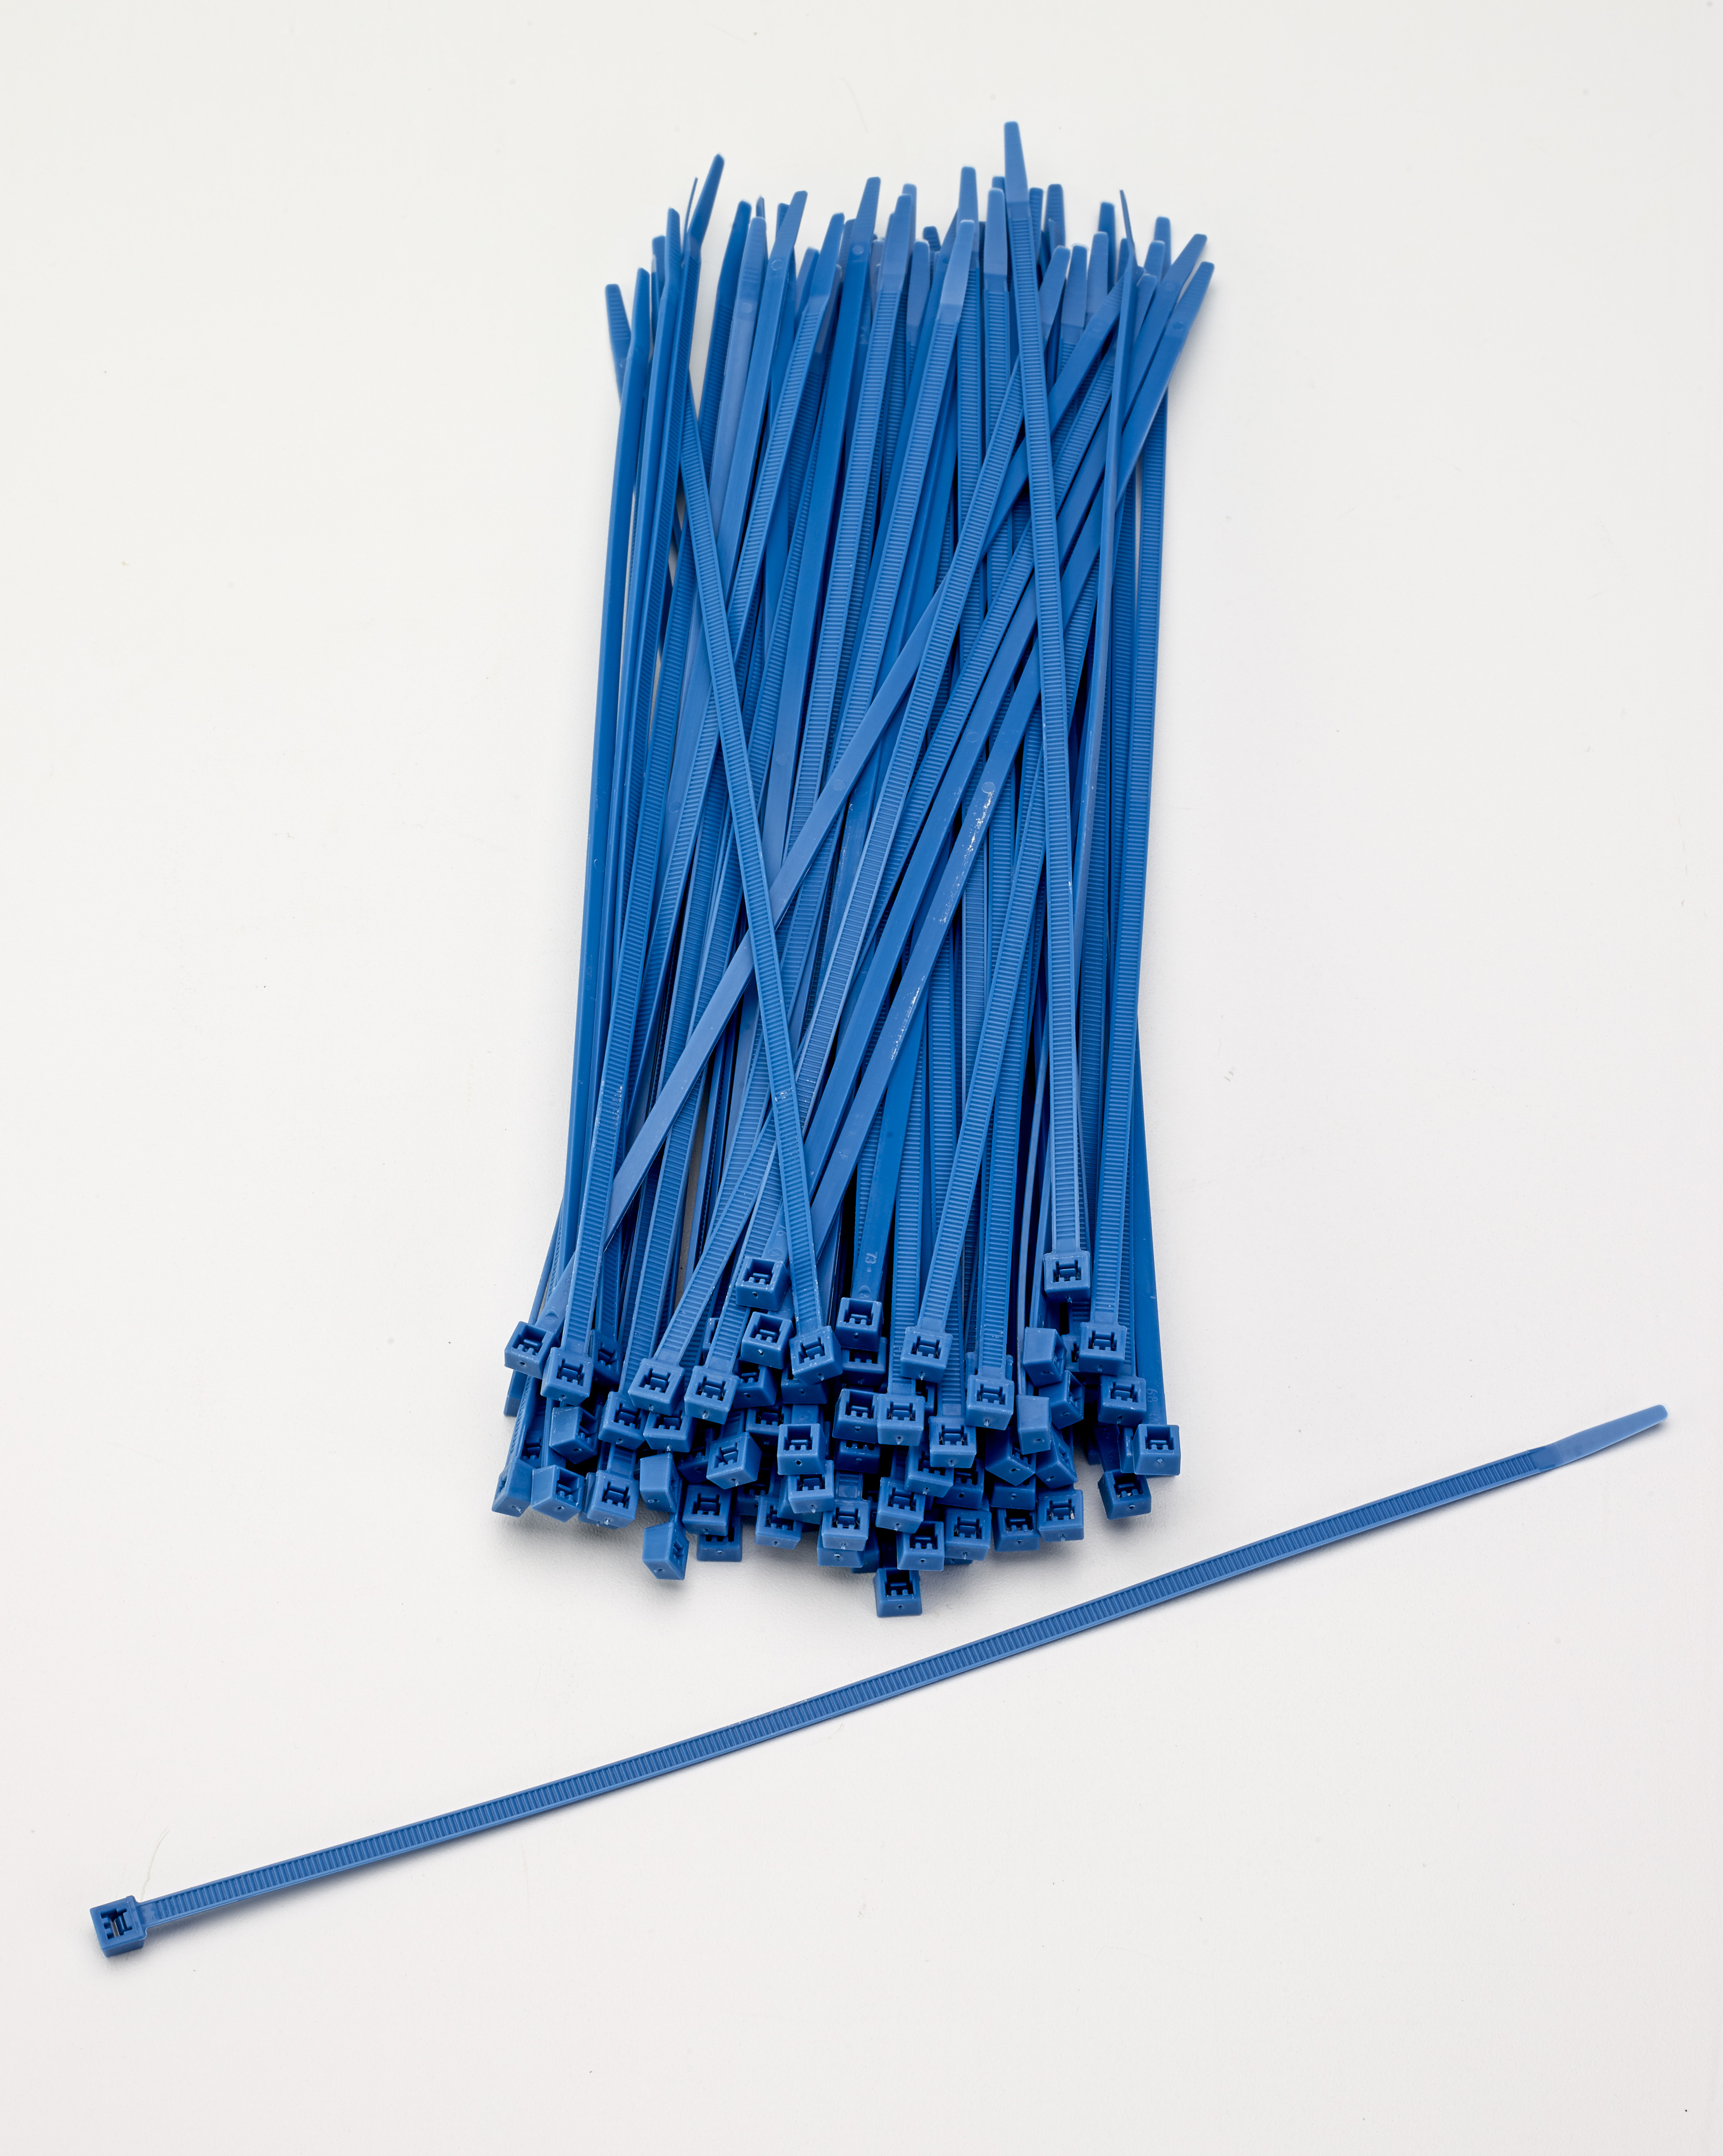 M14970-125-11, Multi-Purpose Locking Ties, 11 in., Neon Blue (Pack of 100), Mutual Industries